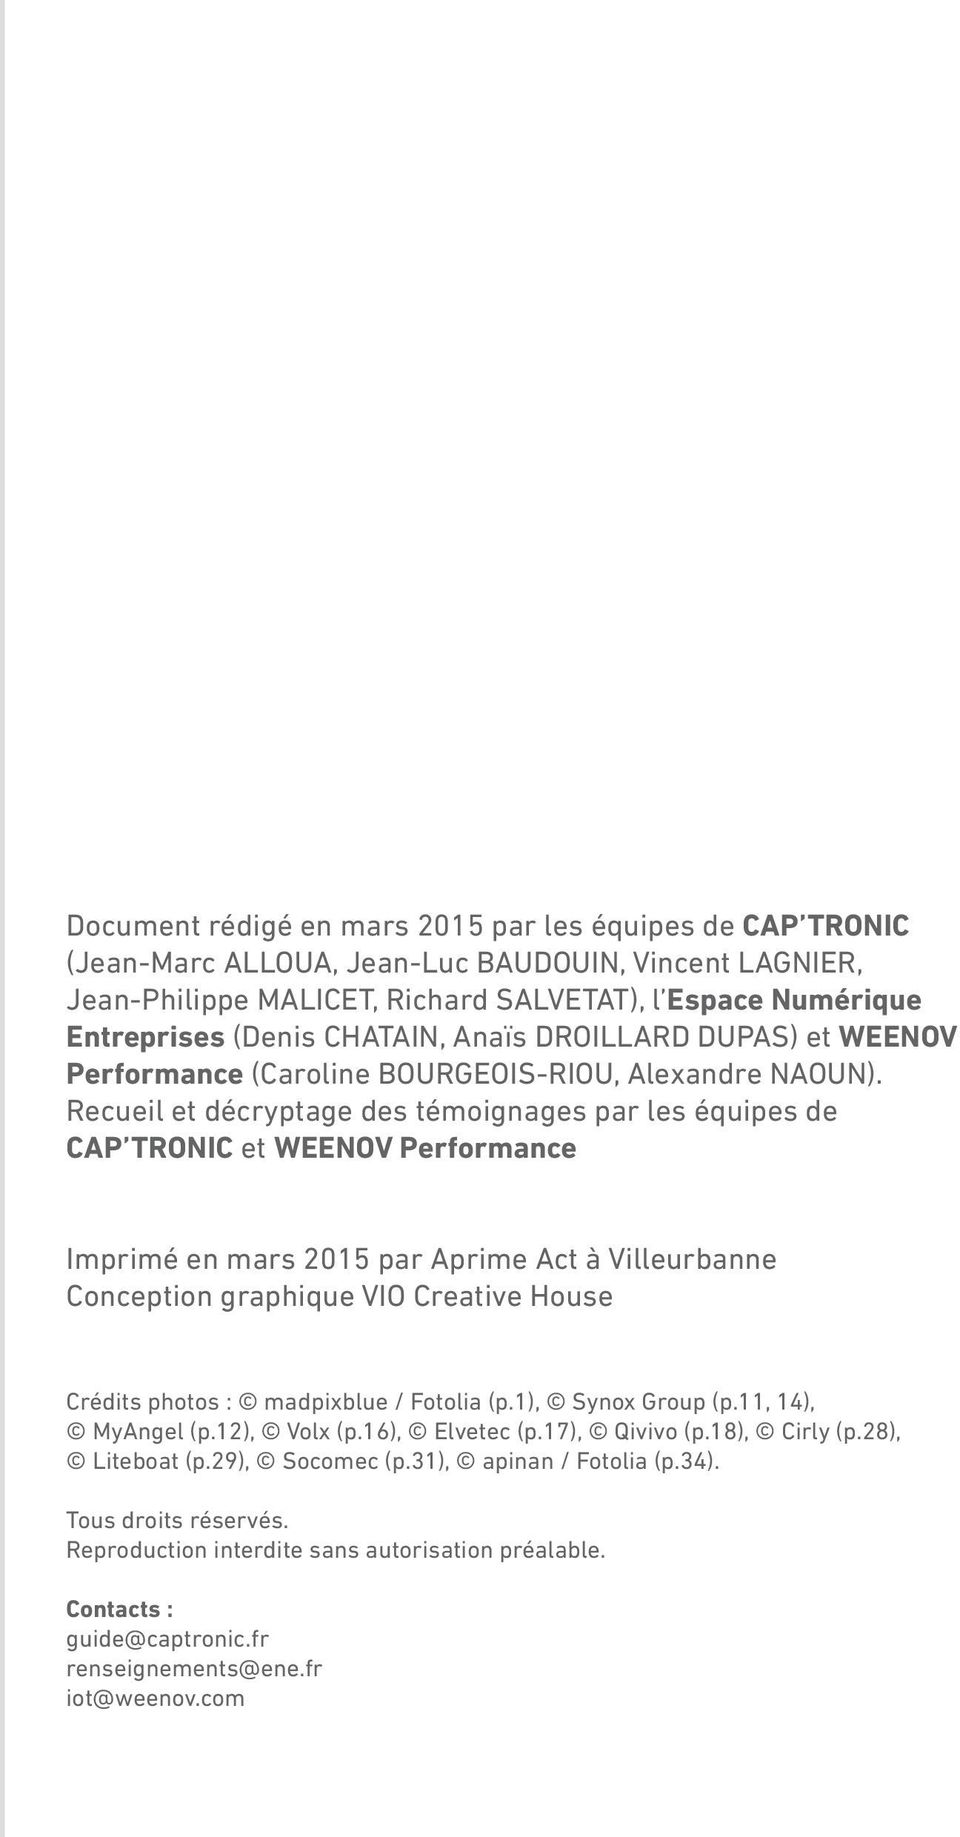 Recueil et décryptage des témoignages par les équipes de CAP TRONIC et WEENOV Performance Imprimé en mars 2015 par Aprime Act à Villeurbanne Conception graphique VIO Creative House Crédits photos :